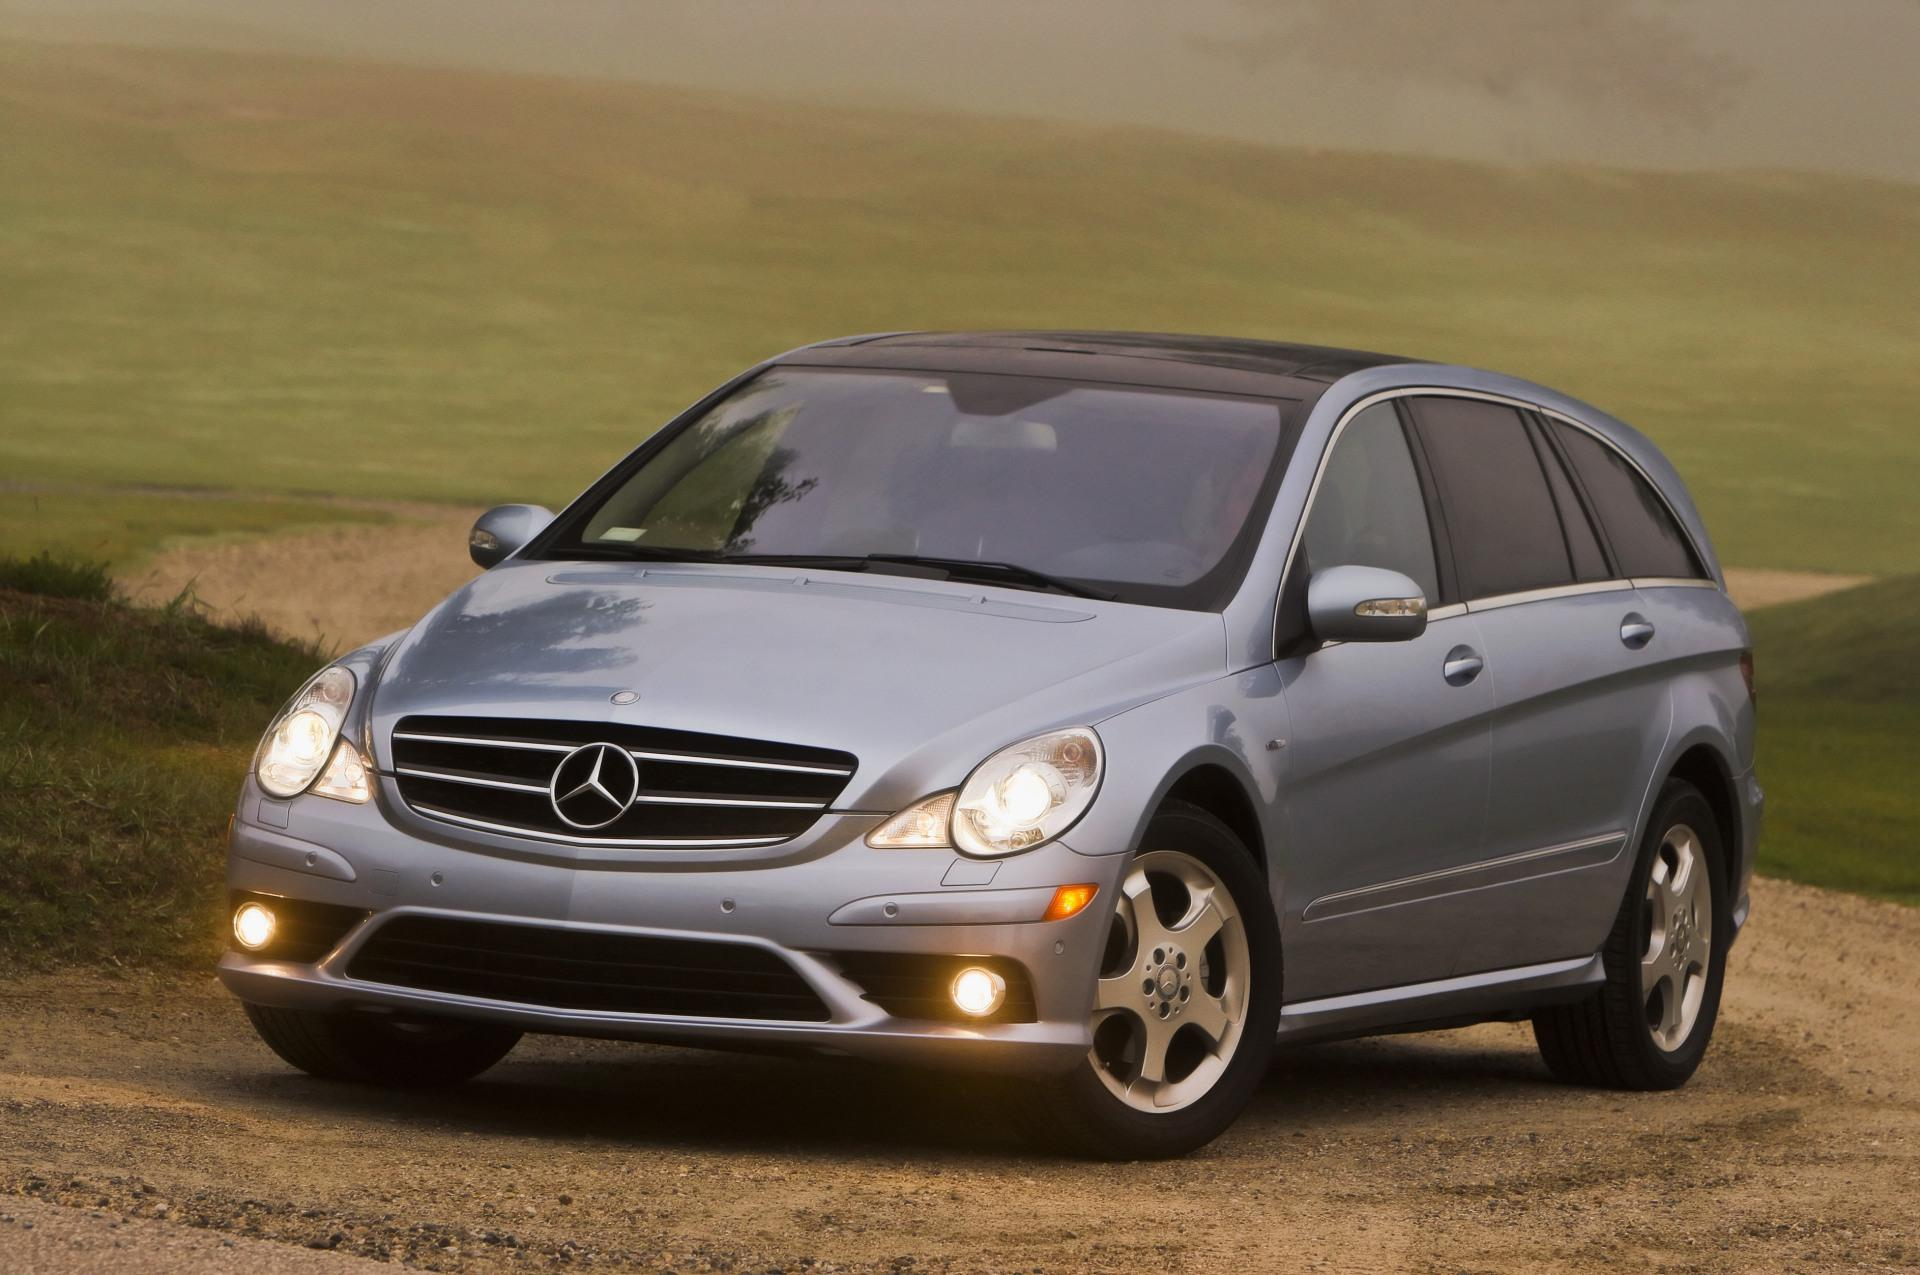 2009 mercedes benz r class news and information for 2008 mercedes benz r350 recalls